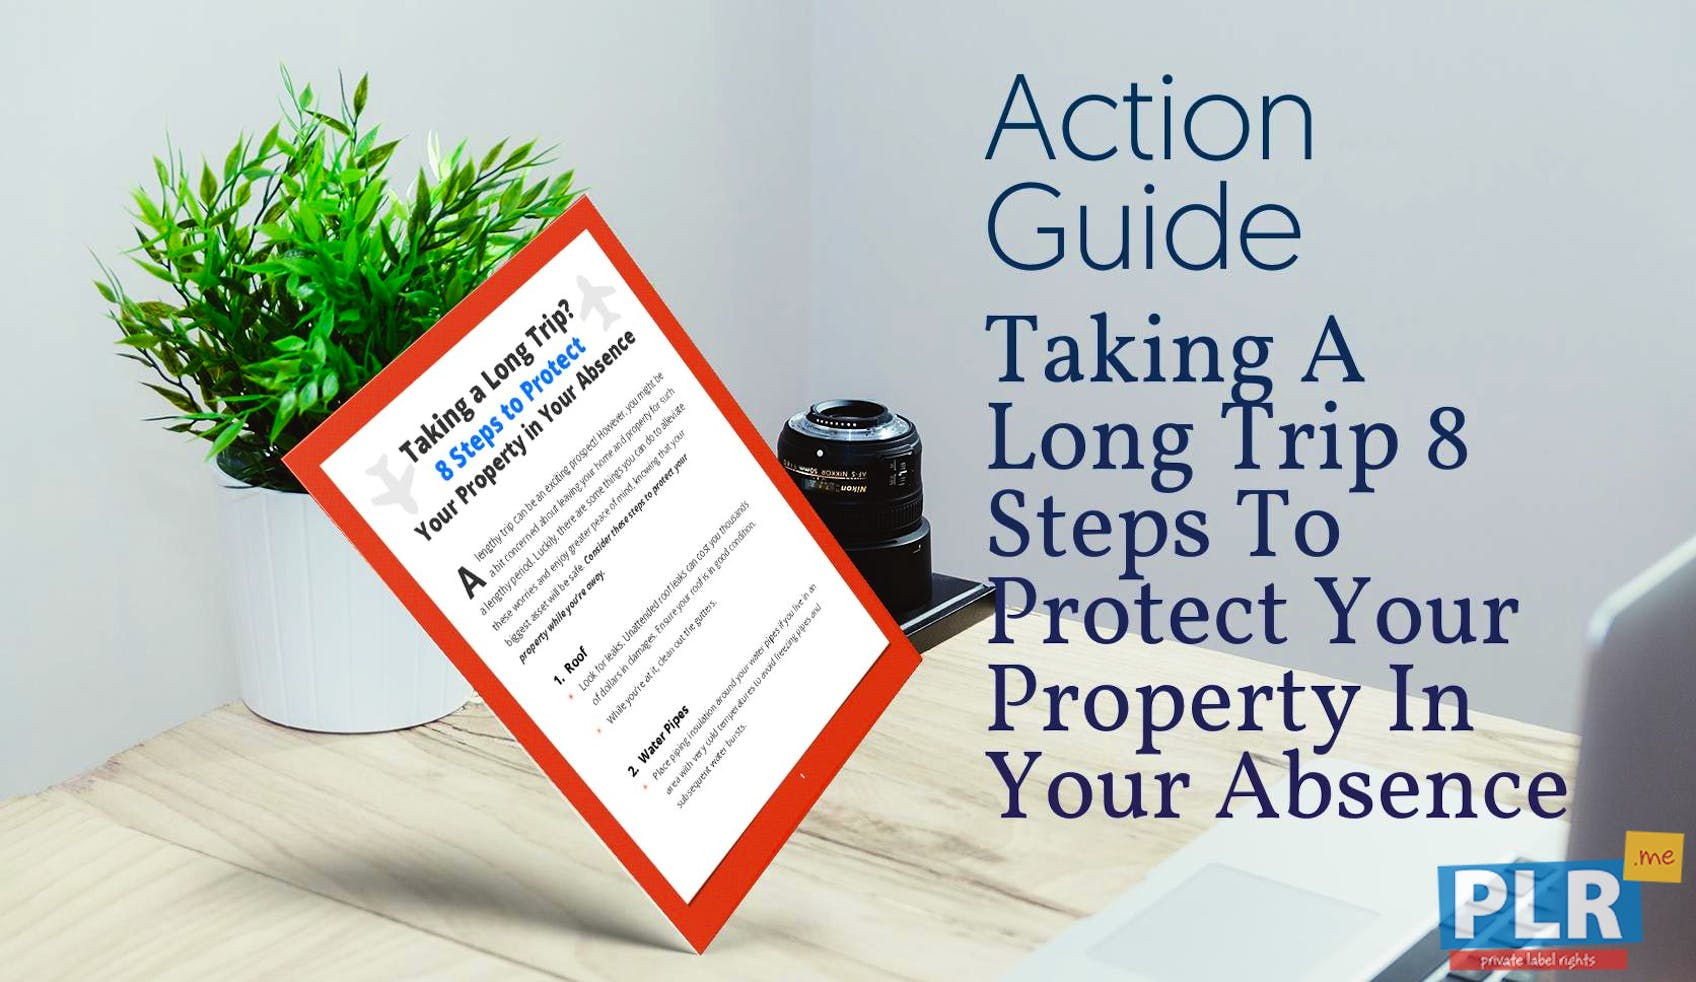 Taking A Long Trip 8 Steps To Protect Your Property In Your Absence